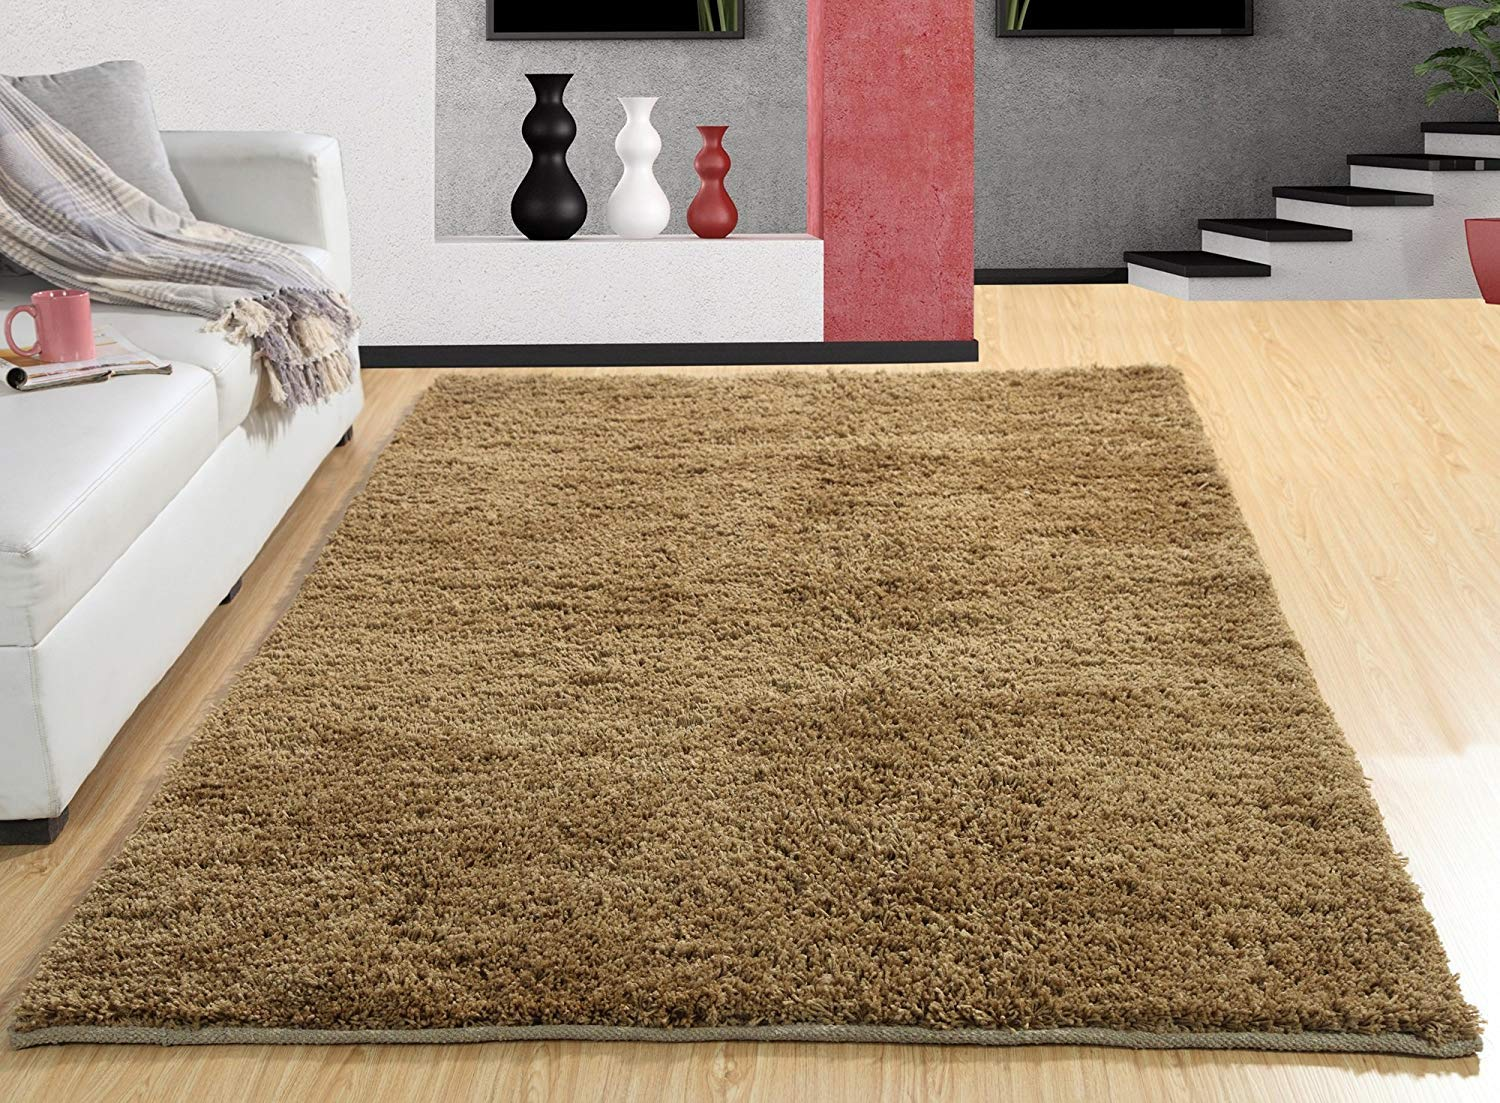 Maple Home Polypropylene Handwoven Shag Area Rug 3'X5' - Black